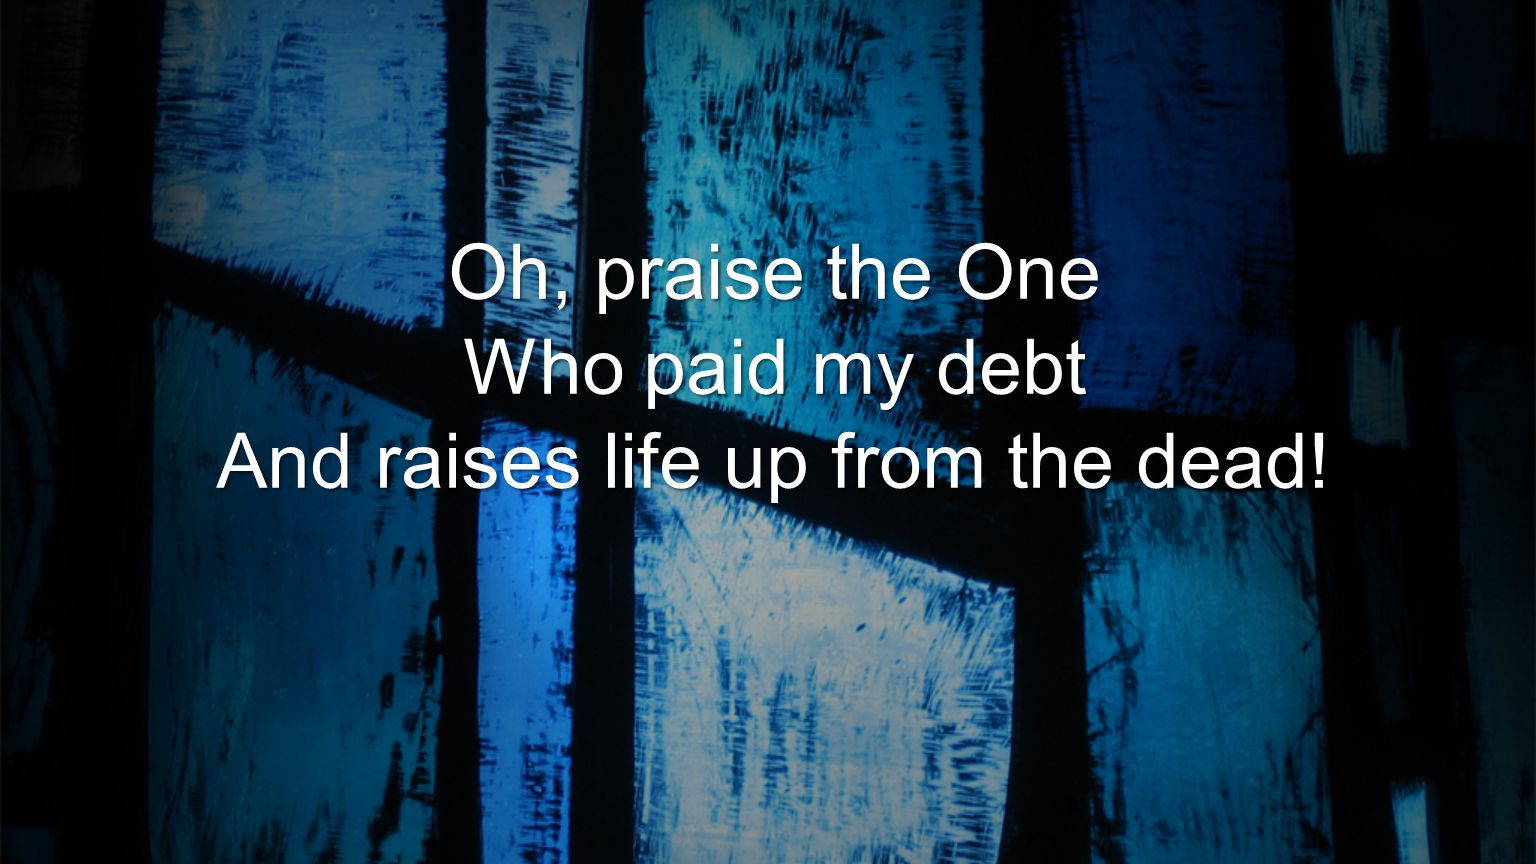 Oh, praise the One Who paid my debt And raises life up from the dead!